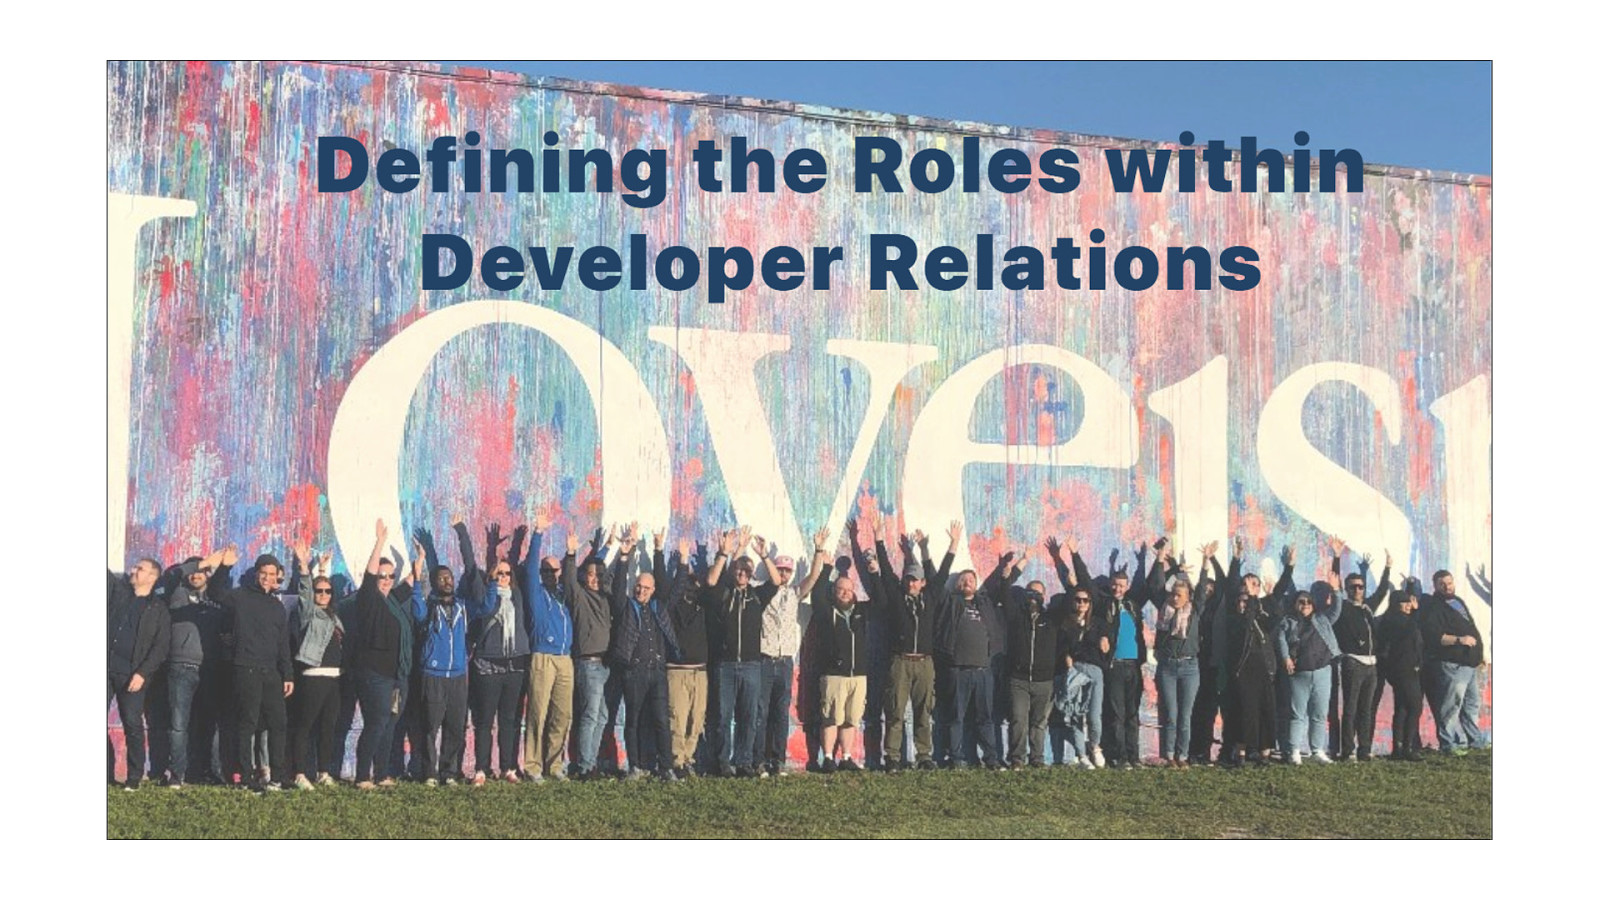 Defining the Roles within Developer Relations